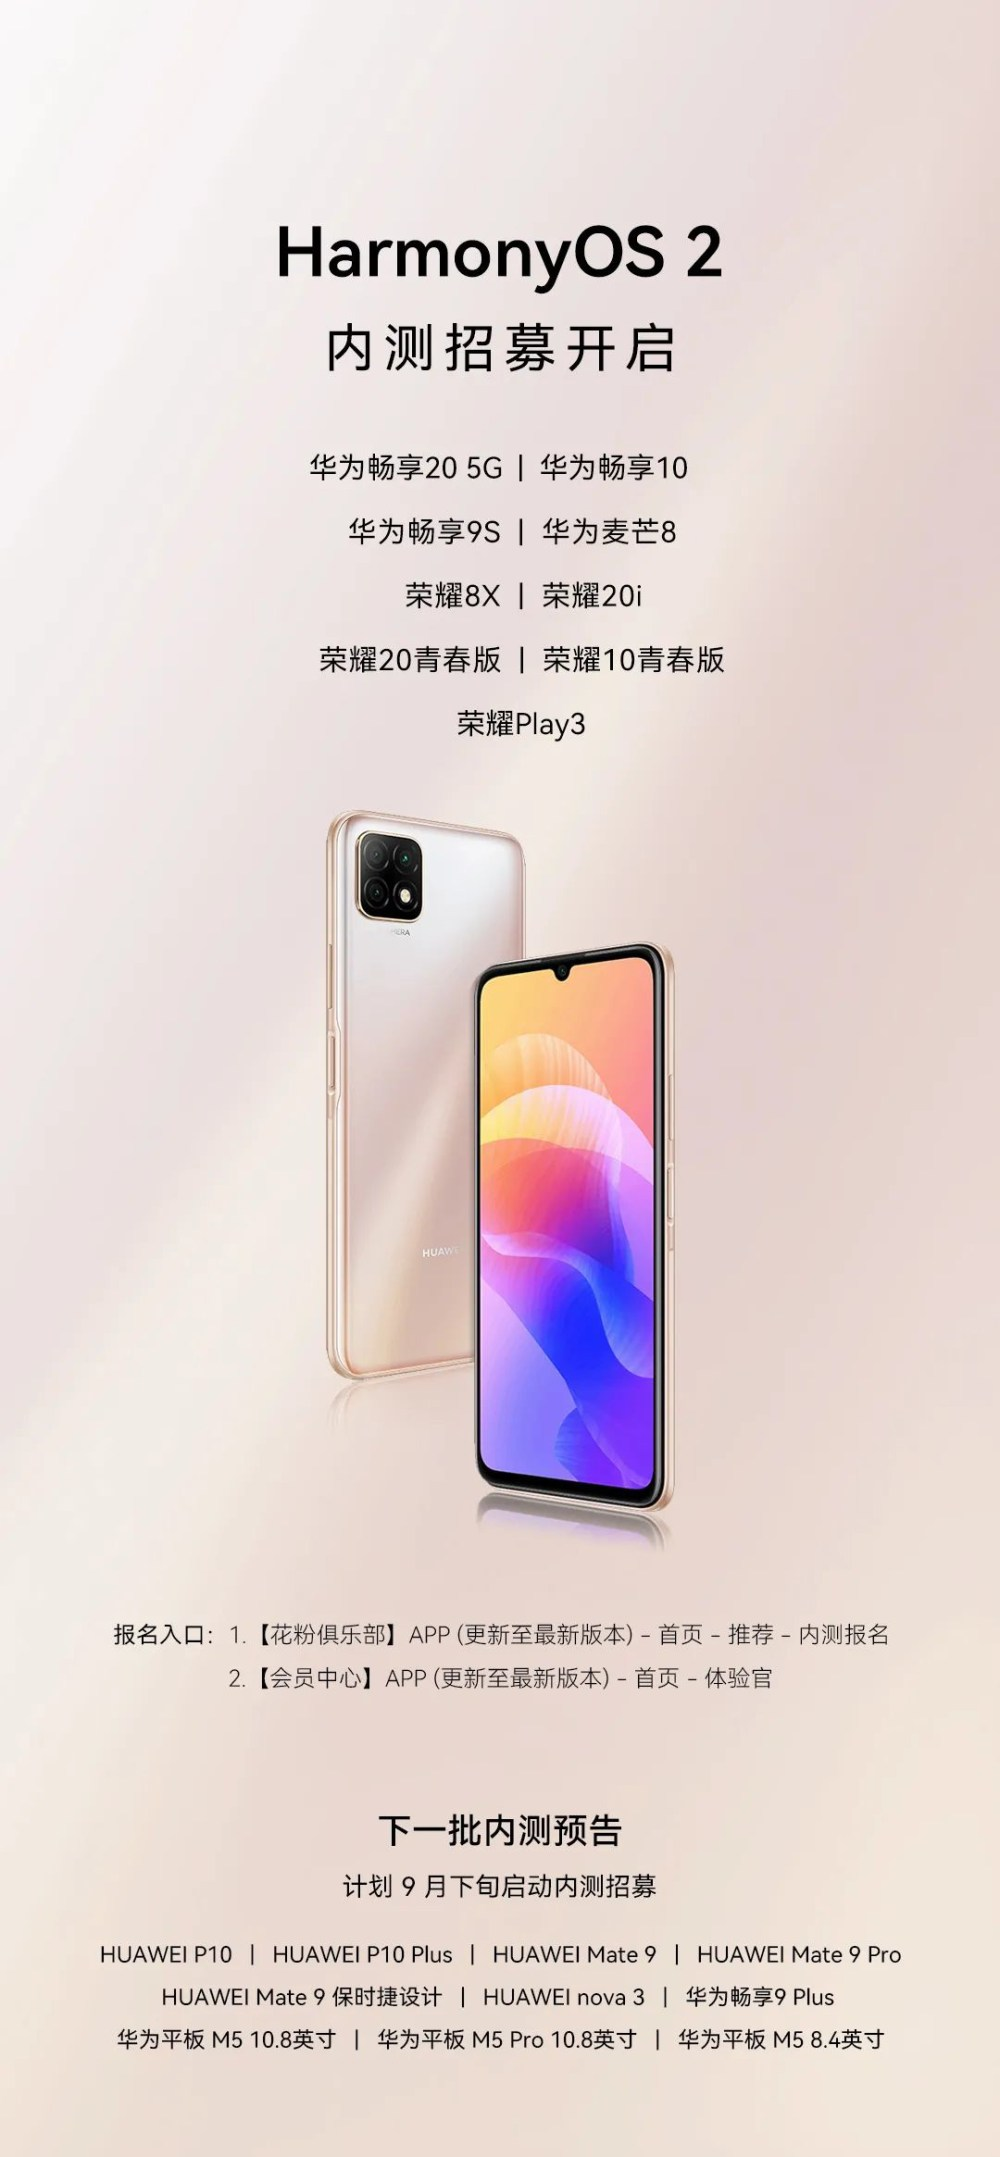 106 Huawei phones now a part of HarmonyOS operating system